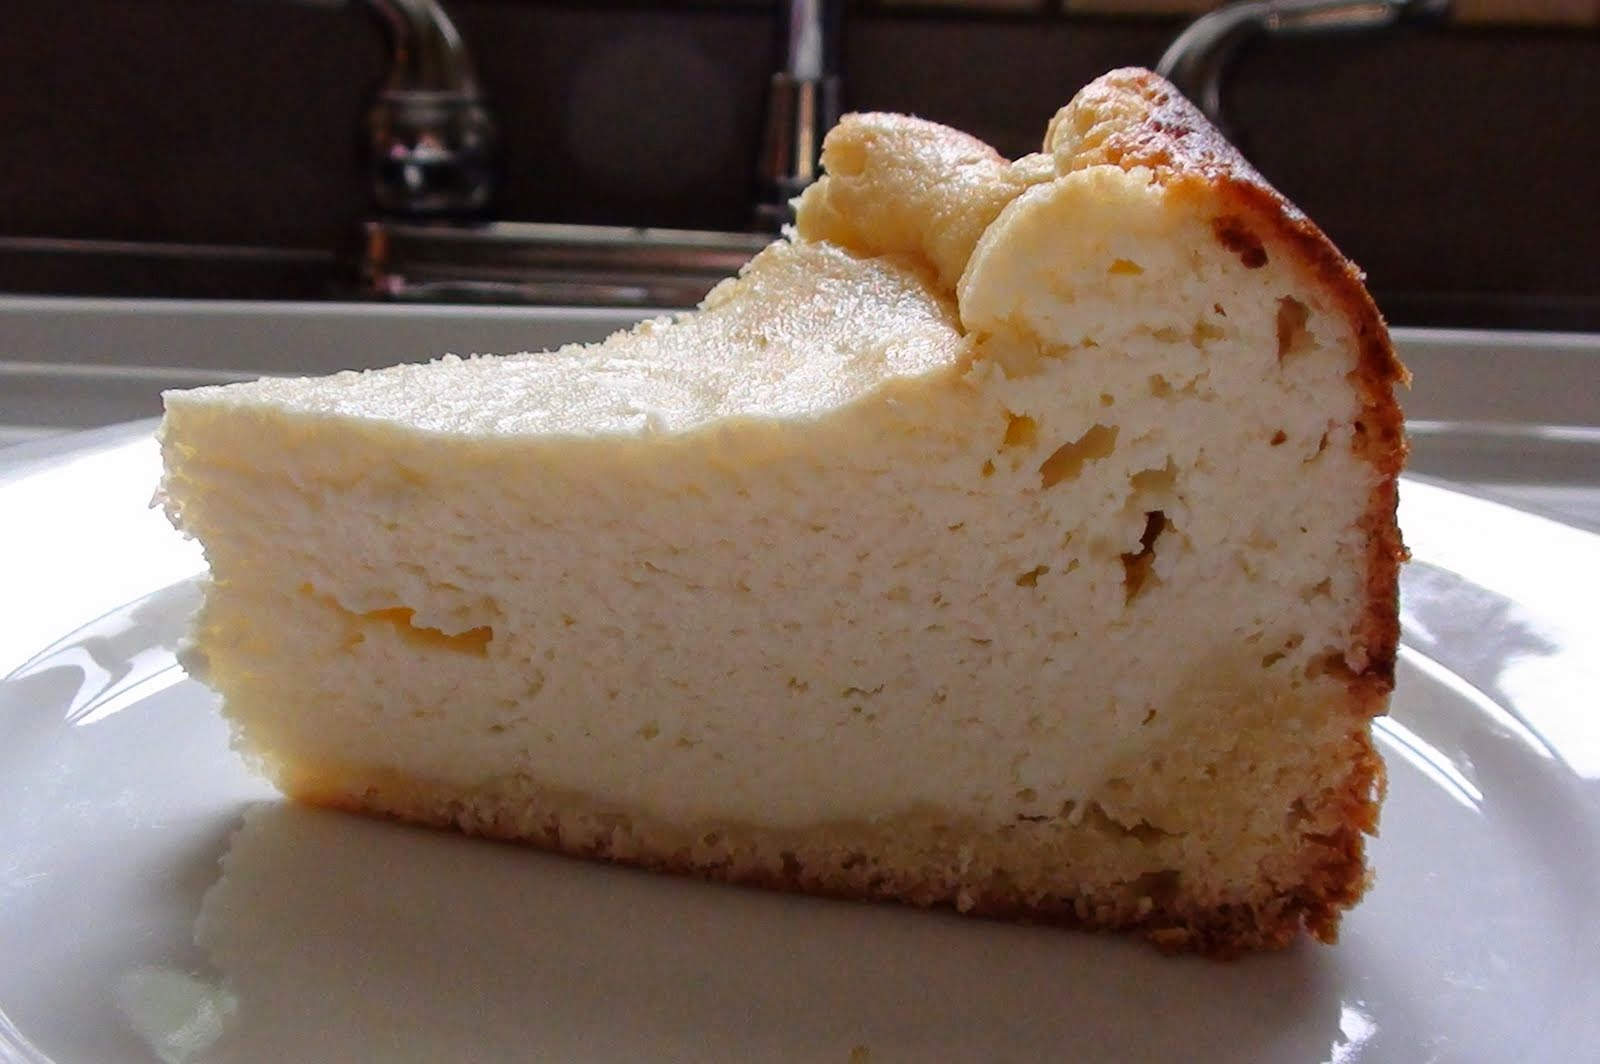 Dry Curd Cottage Cheese Cake